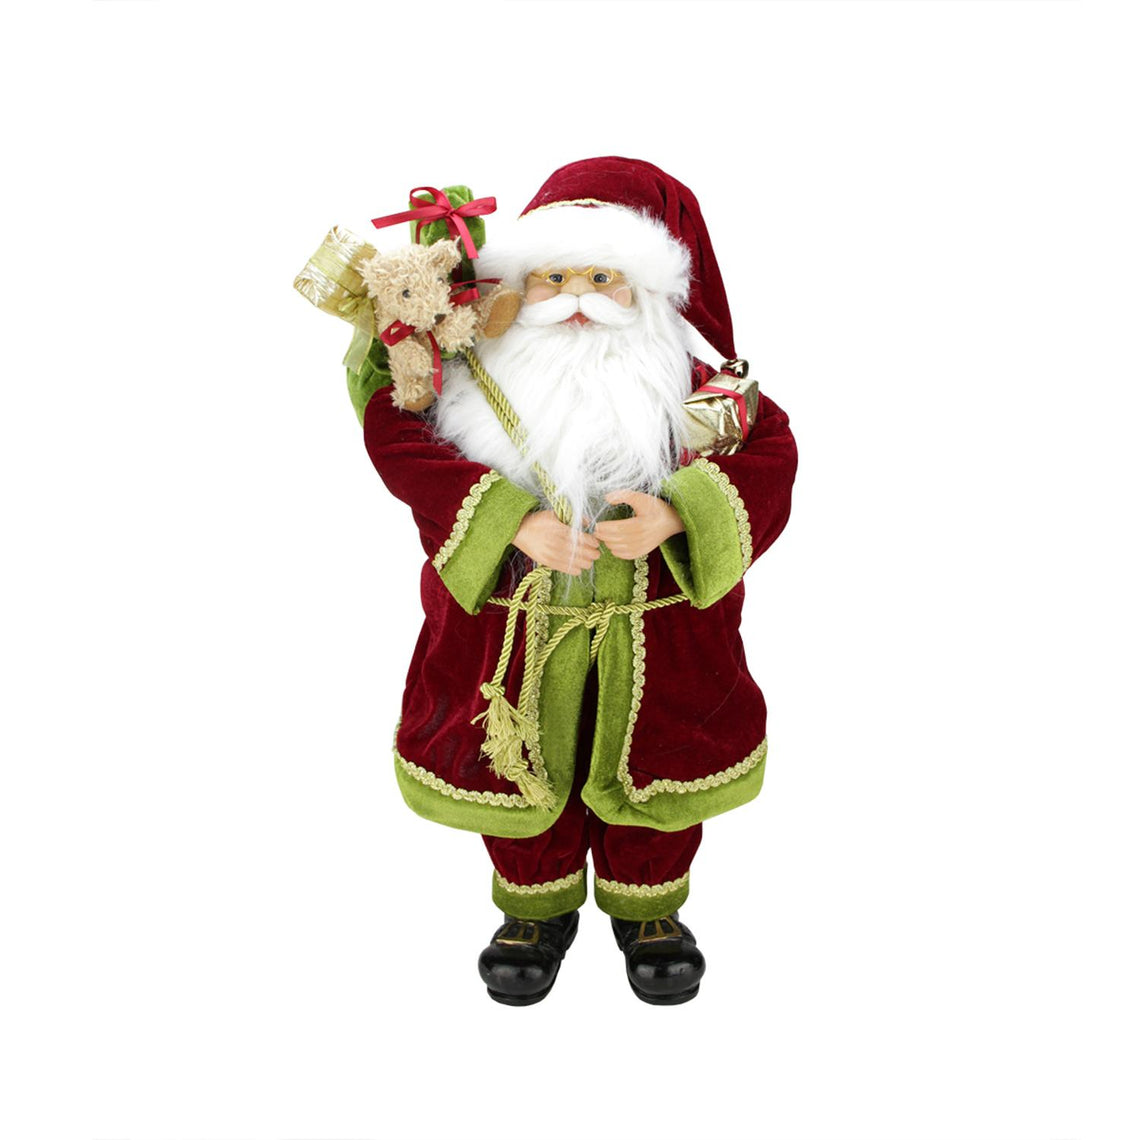 24 Inch Grand Imperial Red Green And Gold Standing Santa Claus Christmas Figure With Gift Bag